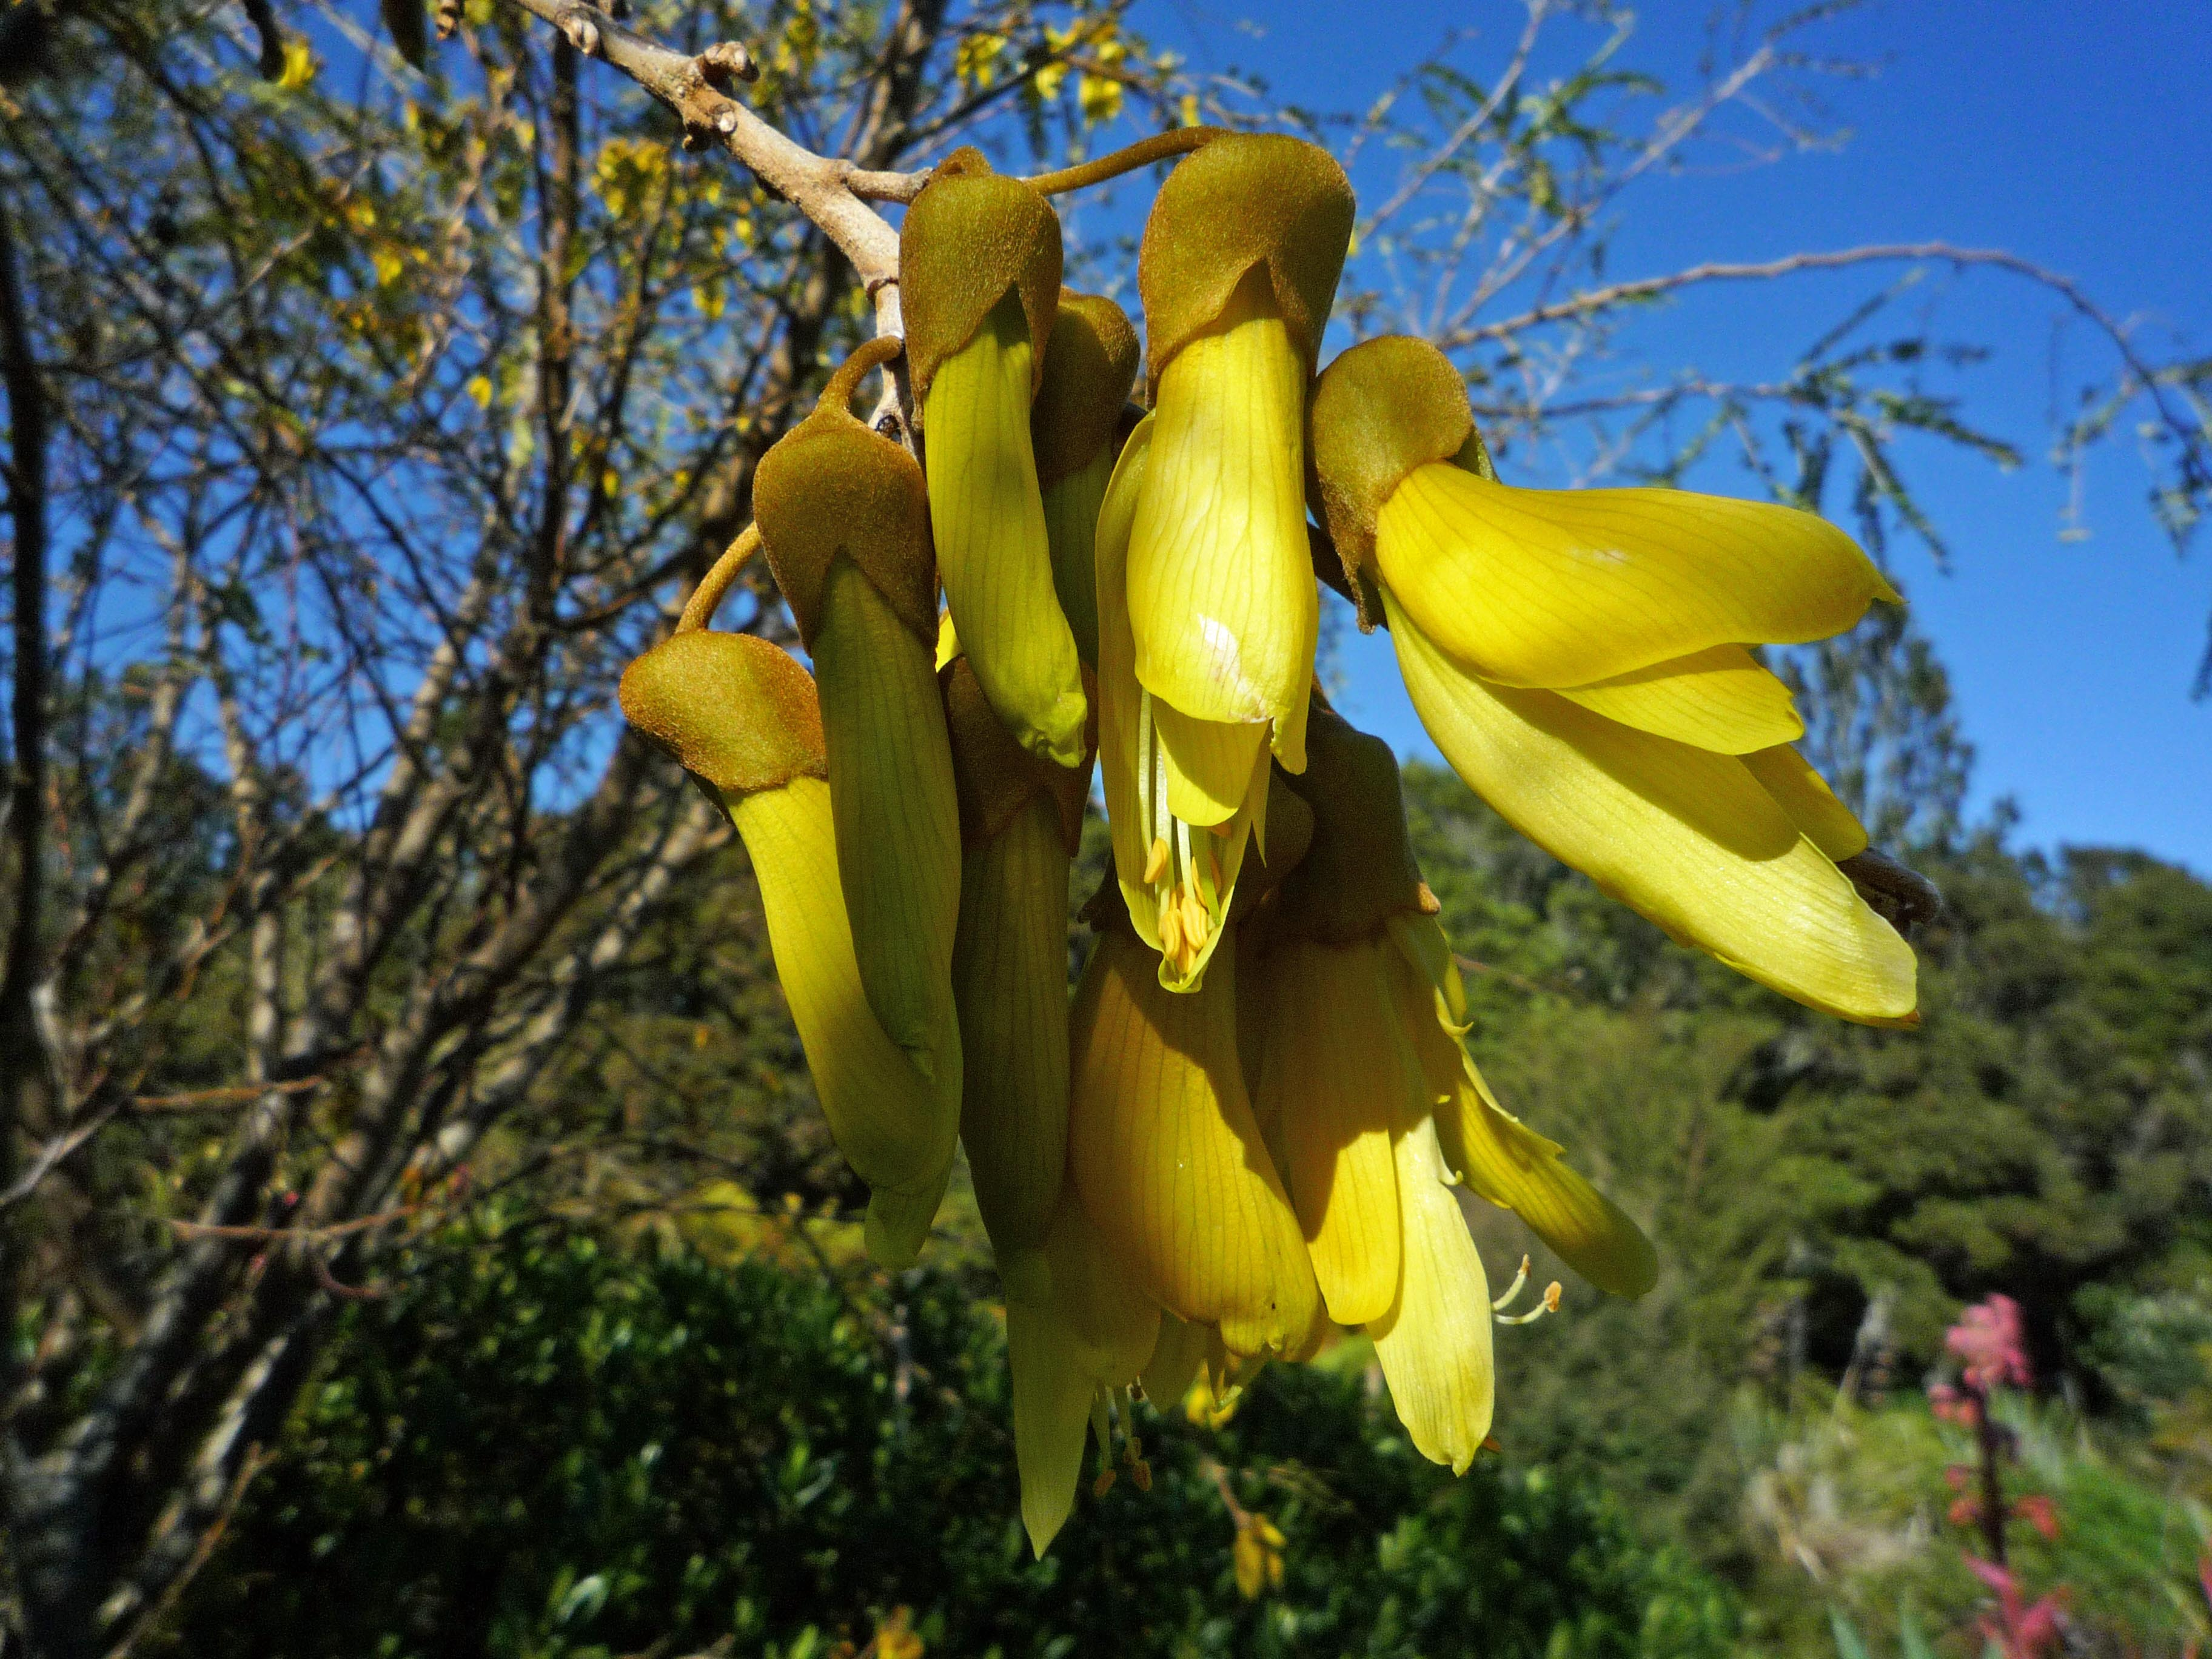 These are kowhai flowers and the tui love them and will travel some distance to find them - that is, if native pigeon haven't already stripped out the buds, which eventually  happens, but not until we have left our New Zealand home when the trees become big enough for it to be worthwhile for the pigeon to bother.